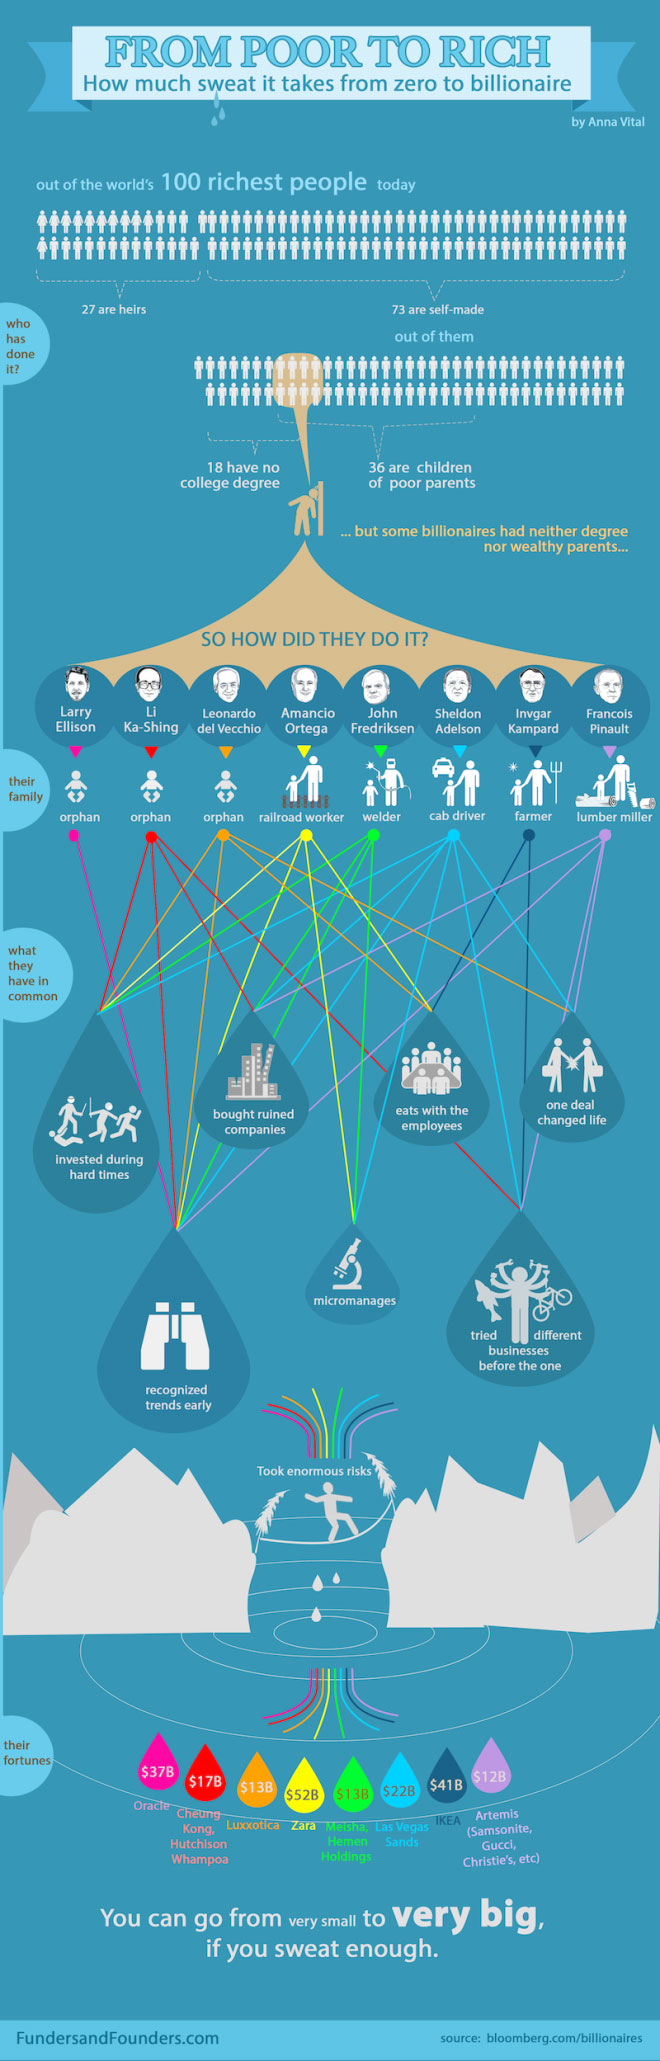 How 8 Billionaires Made Their Fortunes